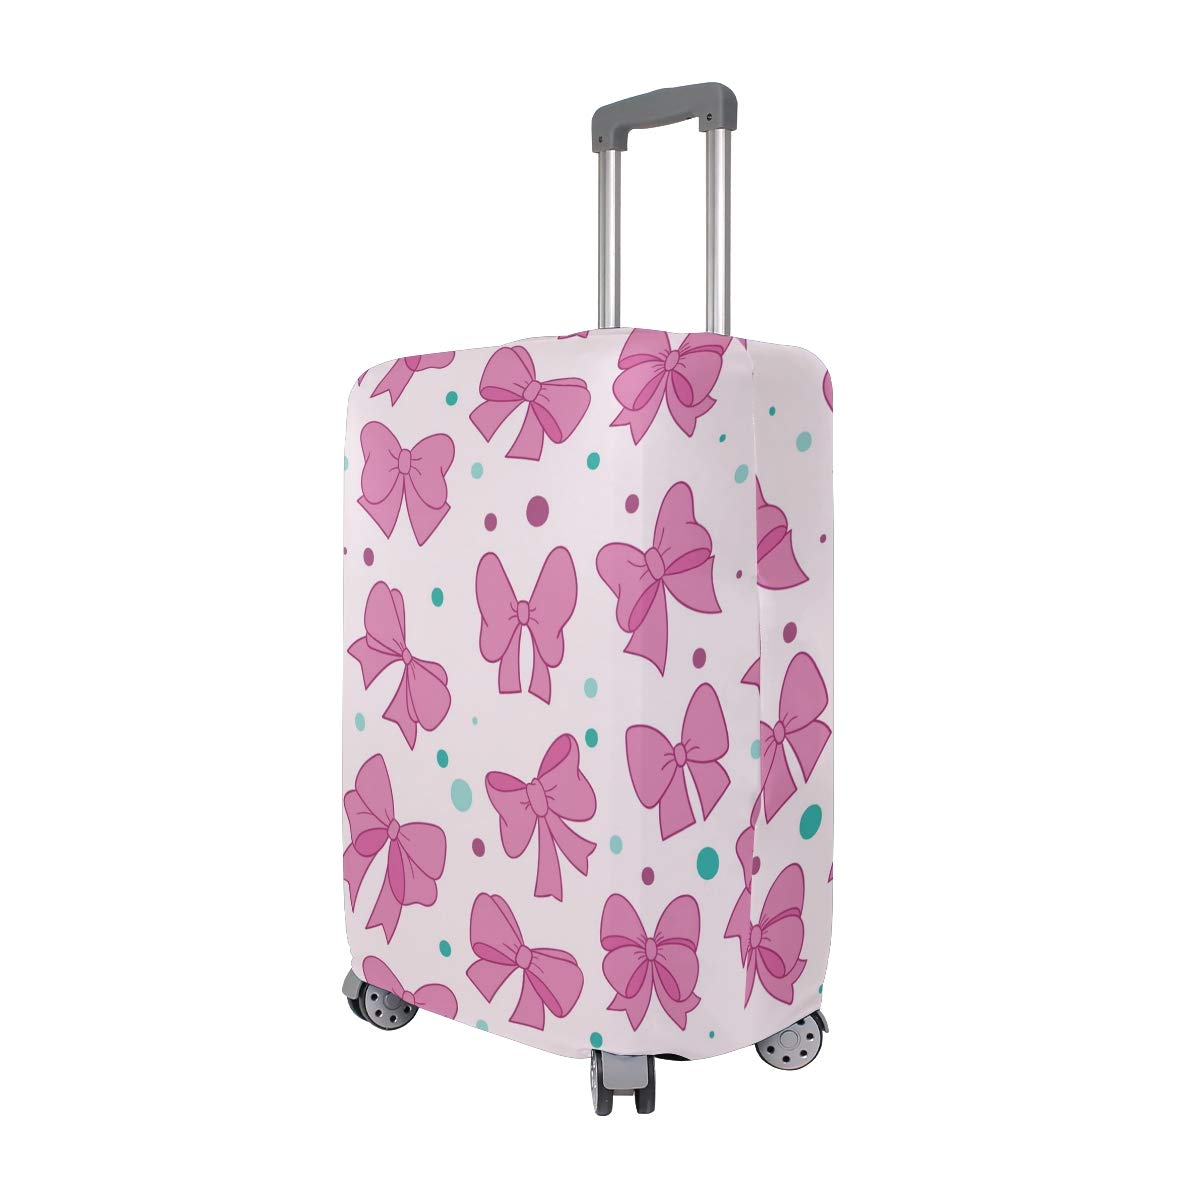 Baggage Covers Pink Bows Pattern Girls Romantic Washable Protective Case